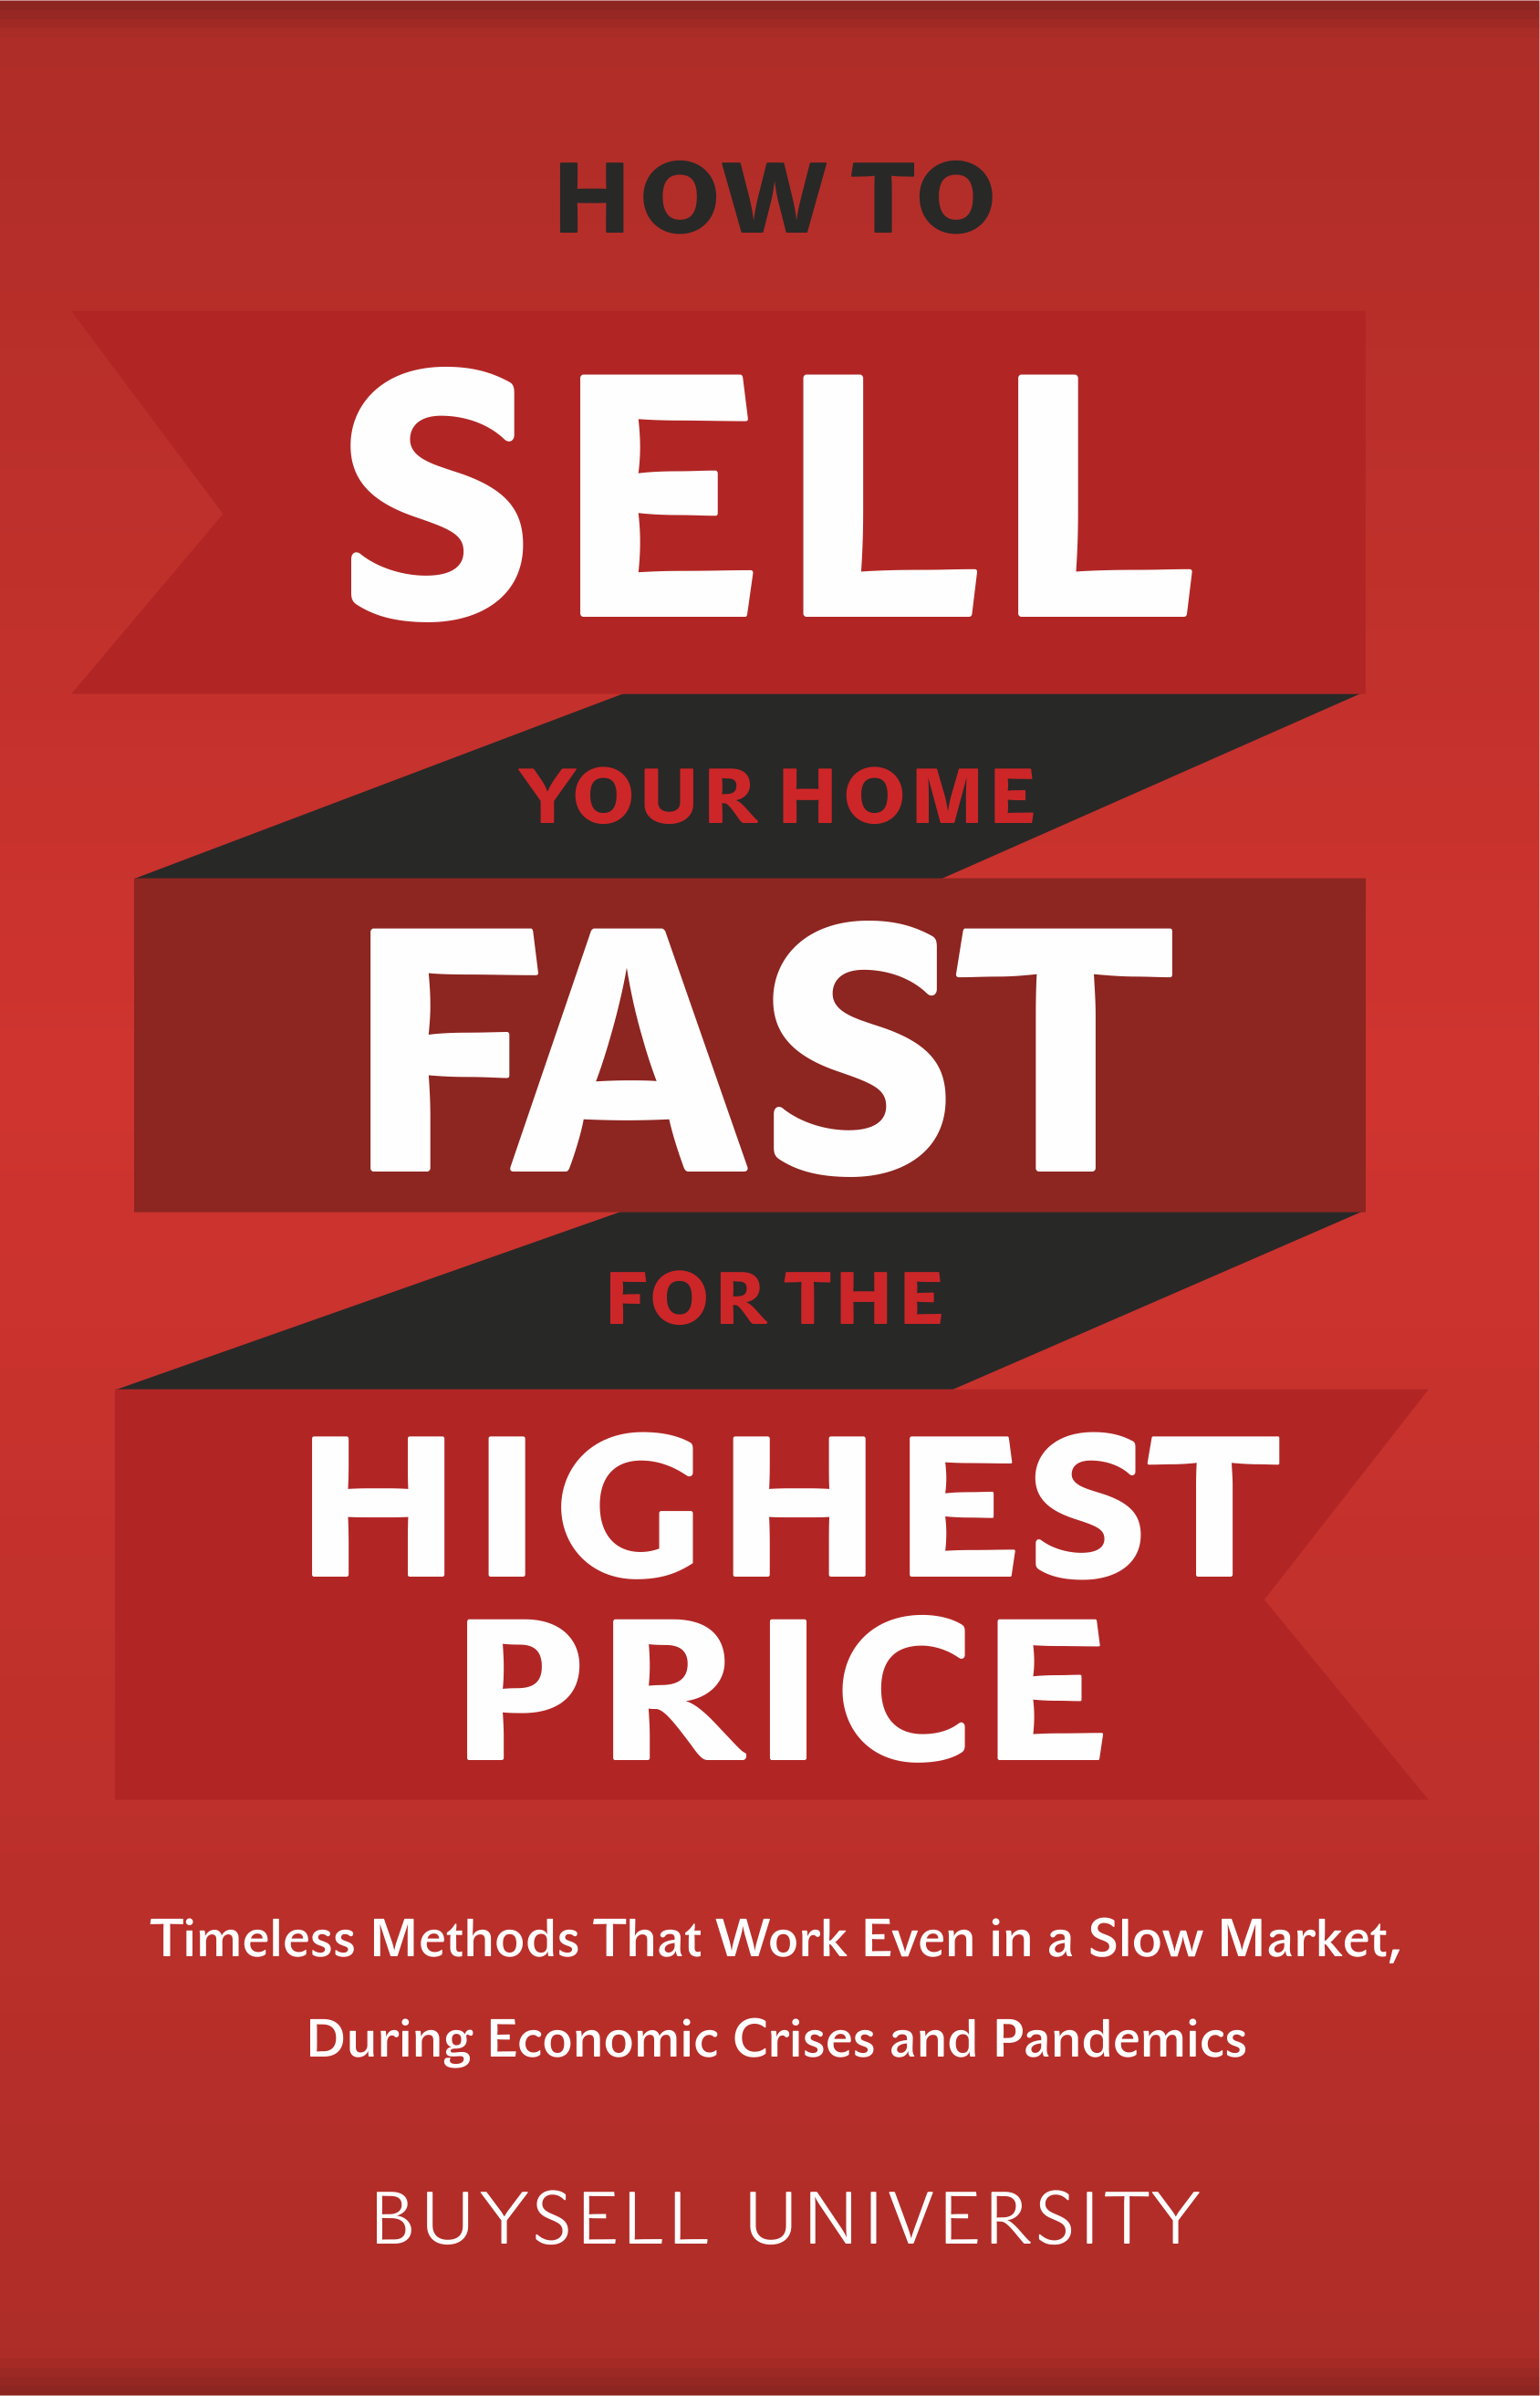 How To Sell Your Home Fast For The Highest Price: Timeless Methods That Work Even in a Slow Market Anywhere In The World